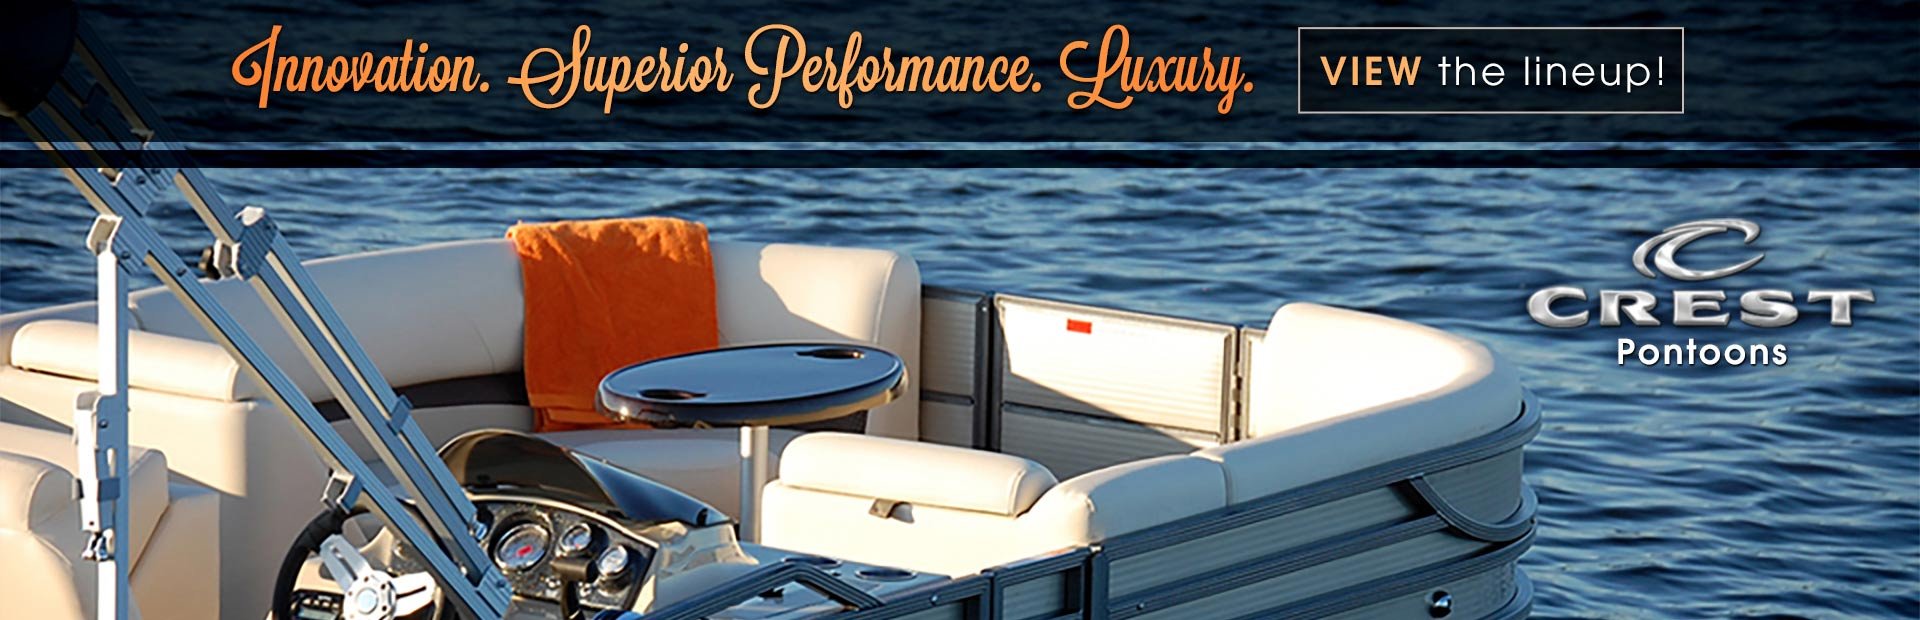 Crest Pontoons: Click here to view the lineup.